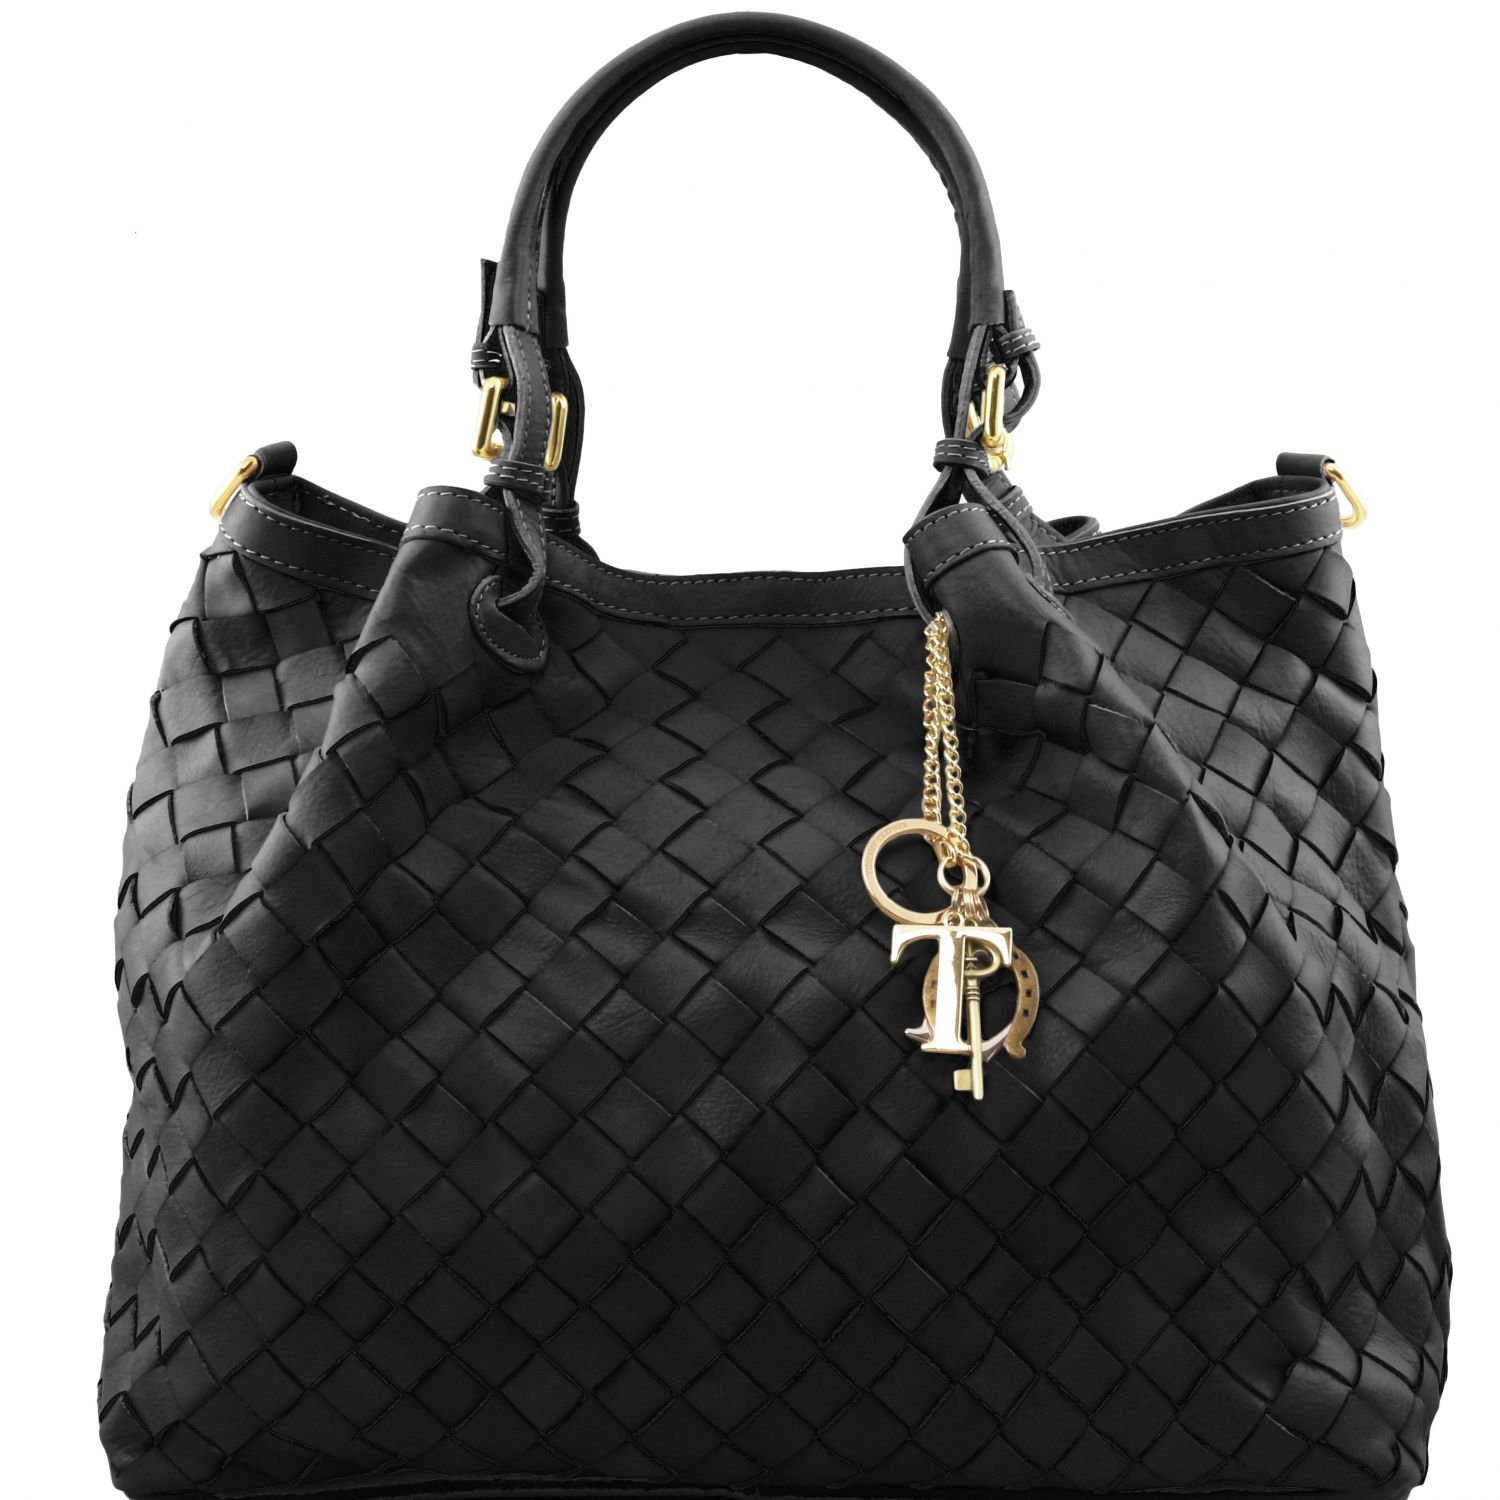 Tuscany Leather TL KeyLuck Handwoven leather tote - Large size Black